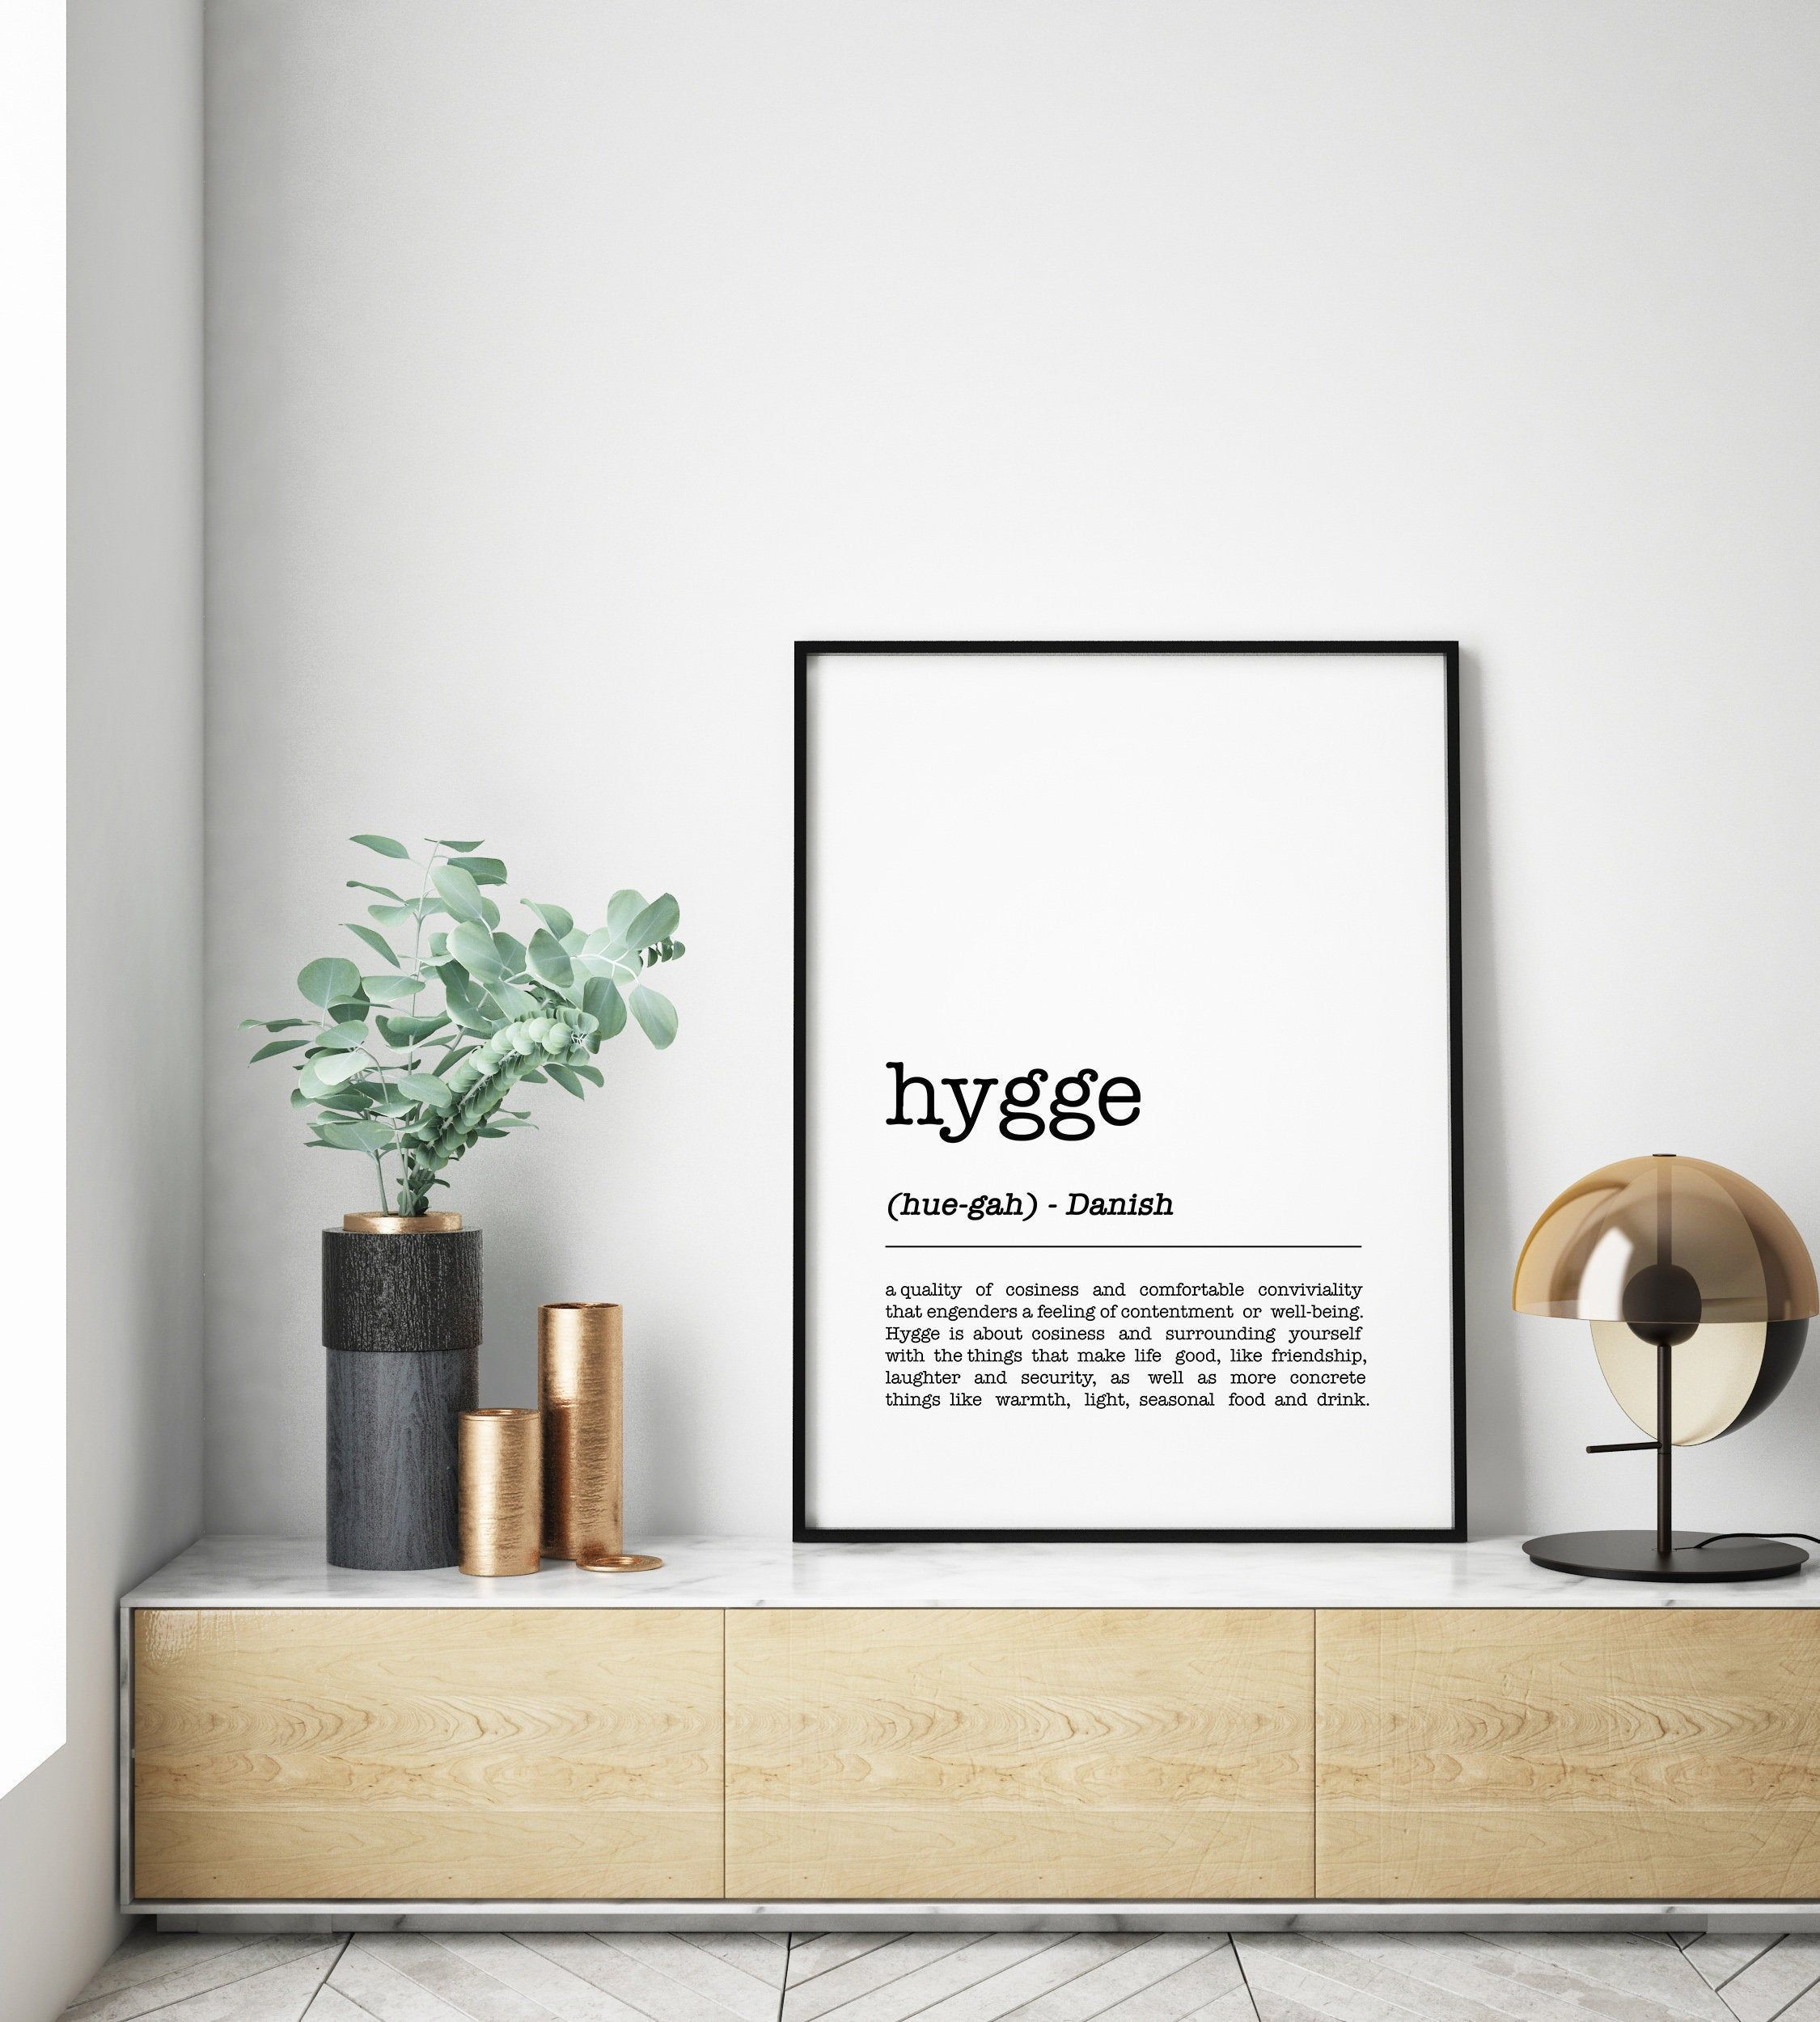 hygge definition wall art hygge poster definition print on hygge wall decor id=23765